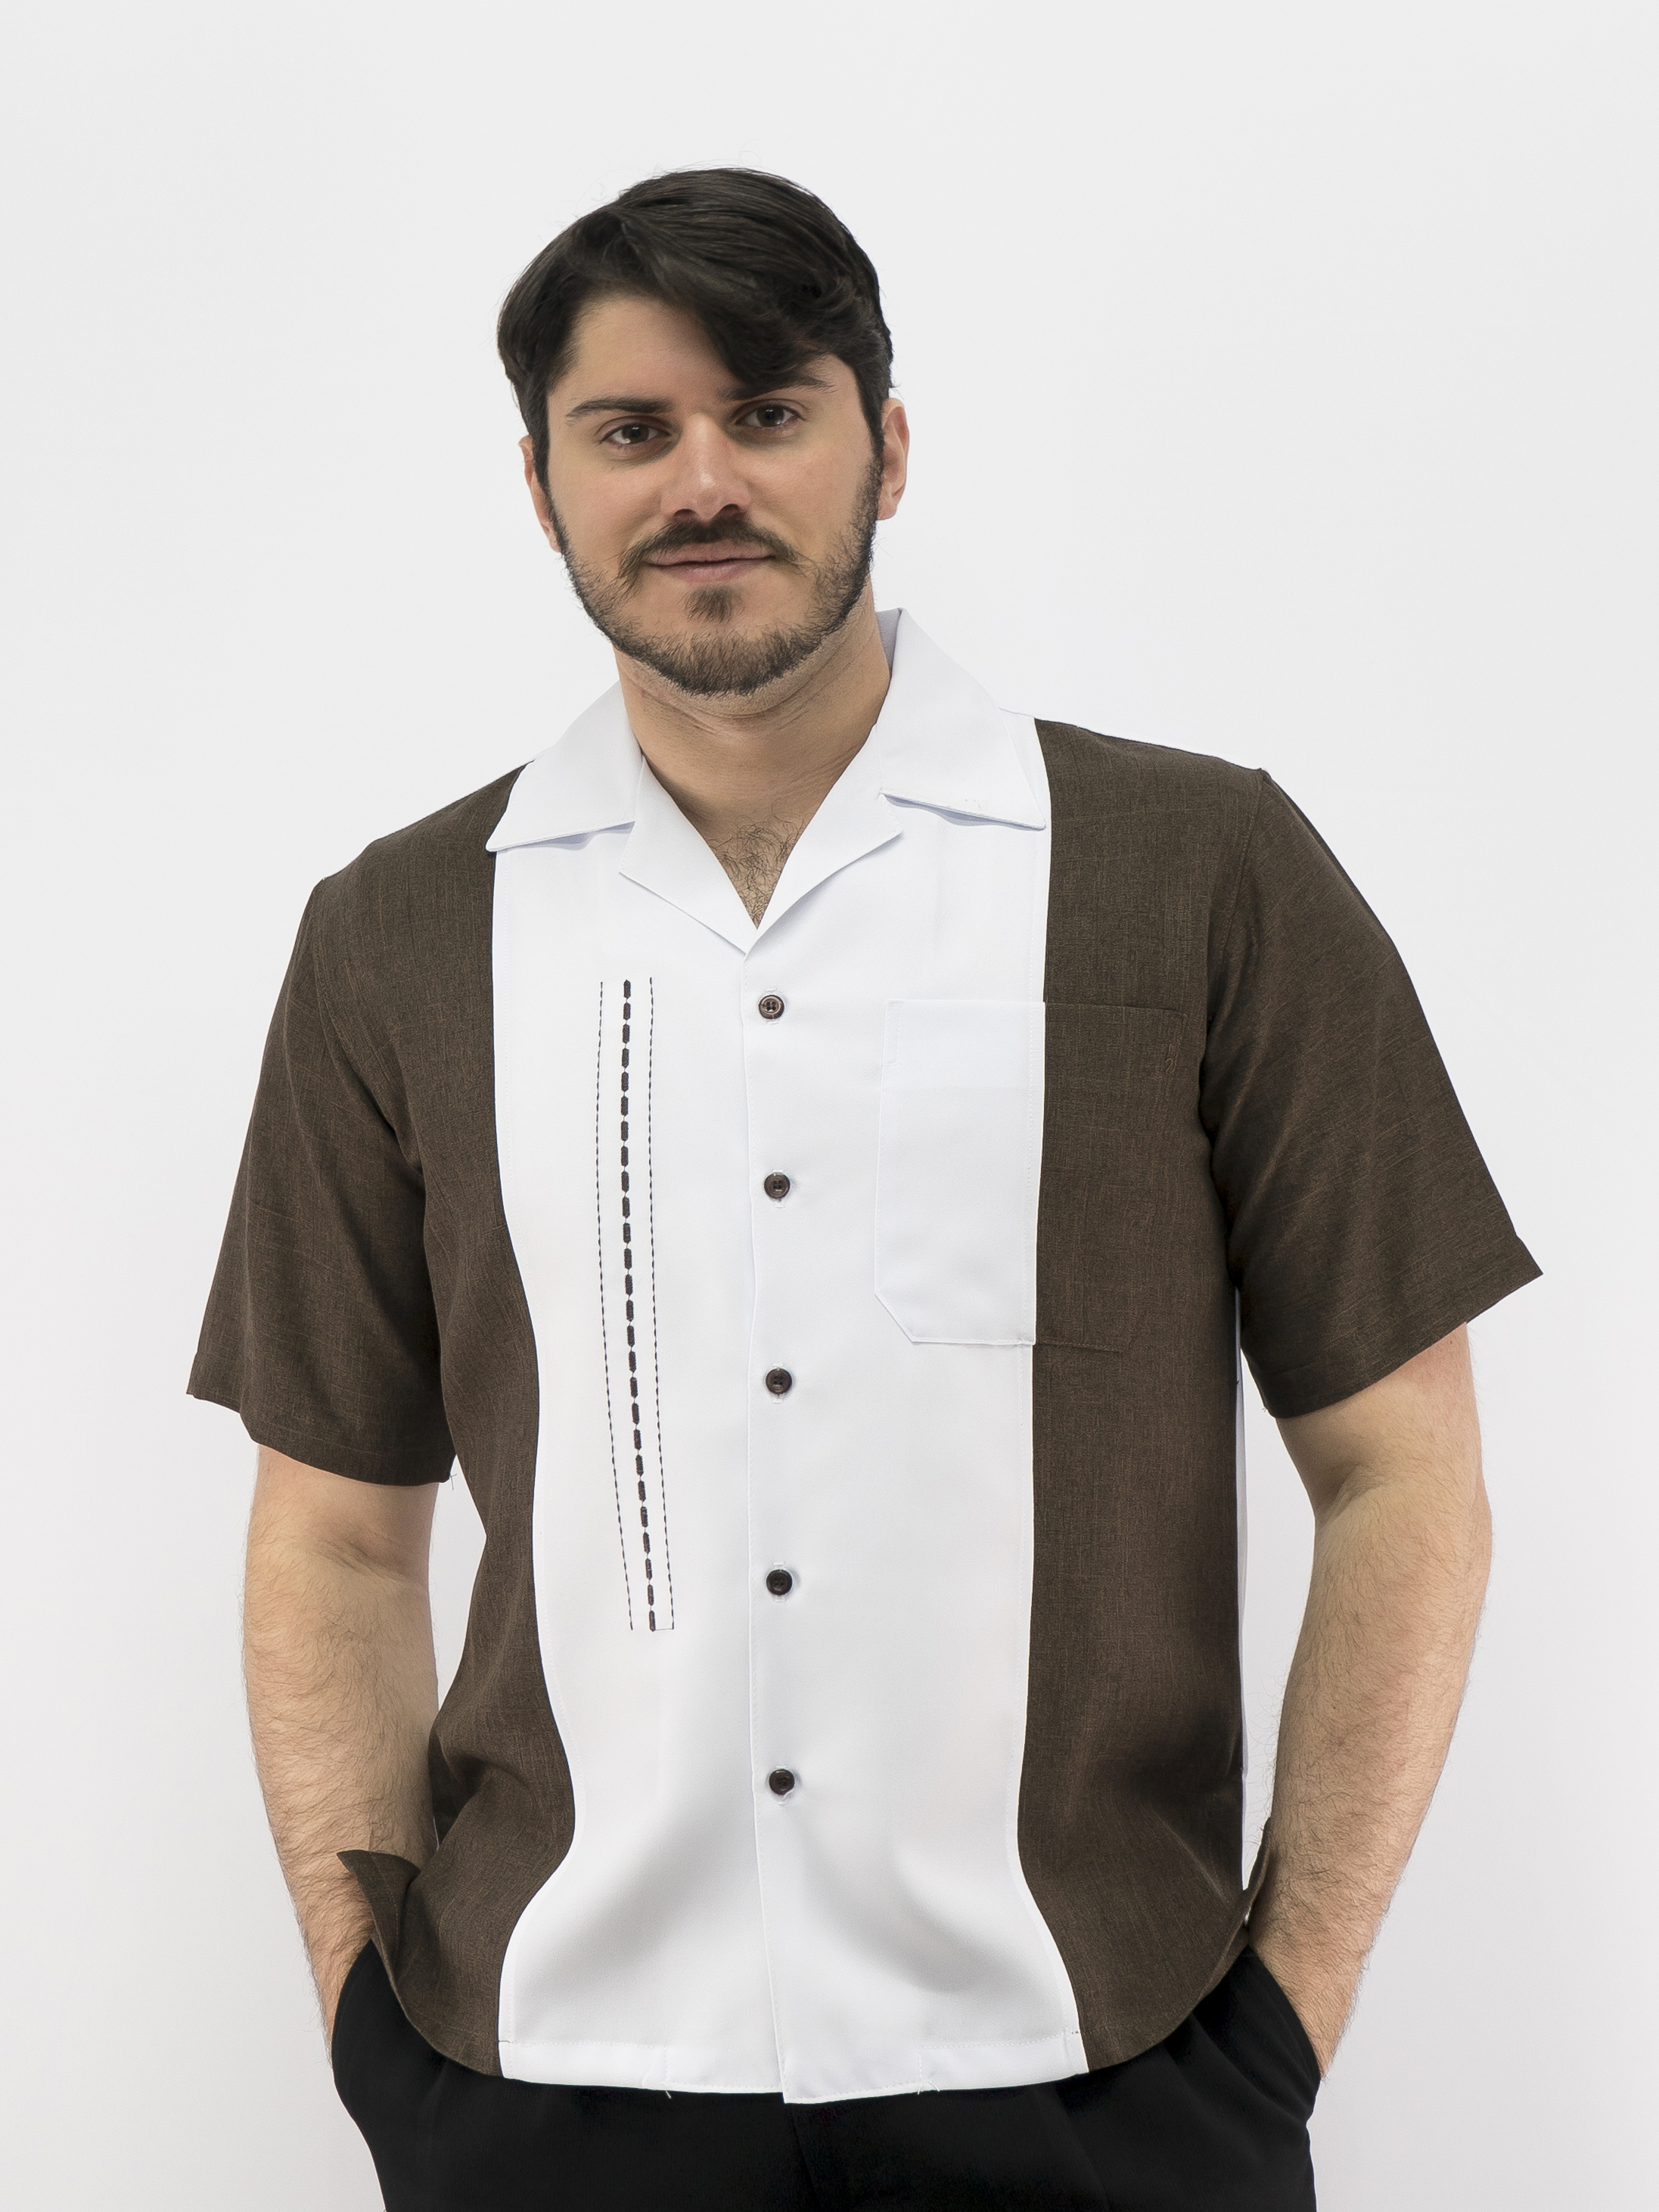 Daccord Mens Casual Shirt Brown White Made In Usa 5031 Sold Out